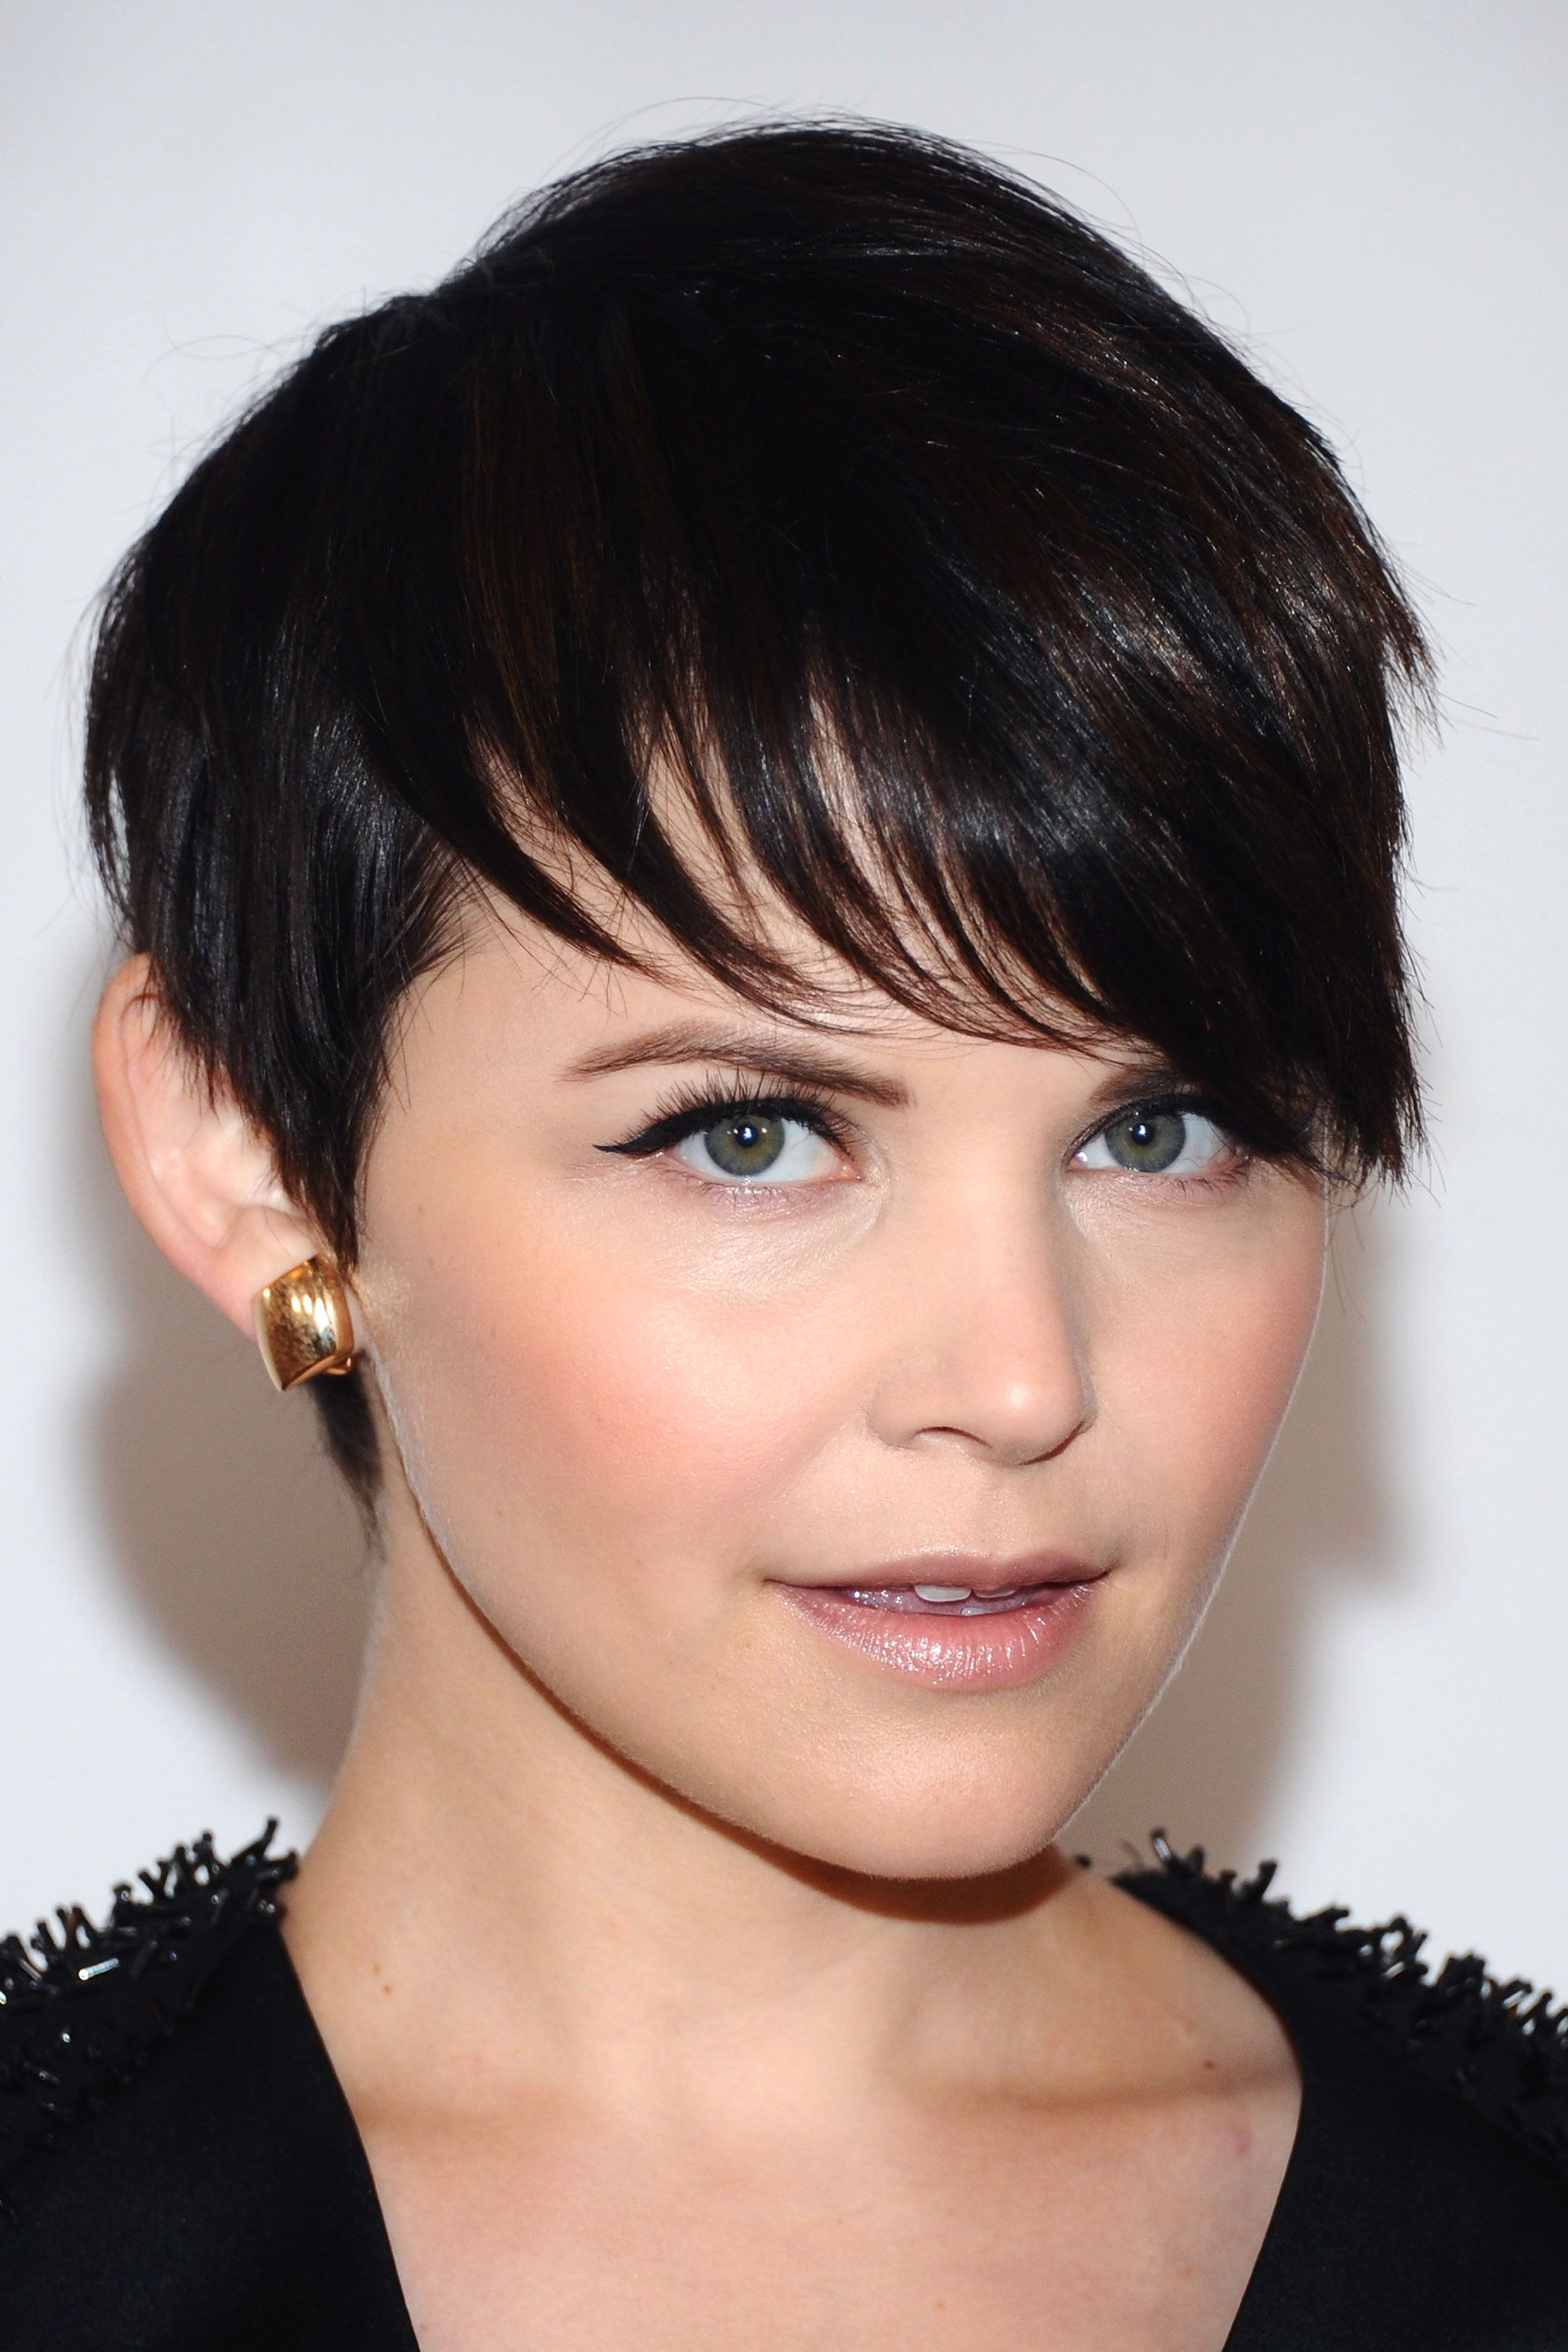 Pixie Cuts We Love for Short Pixie Hairstyles from